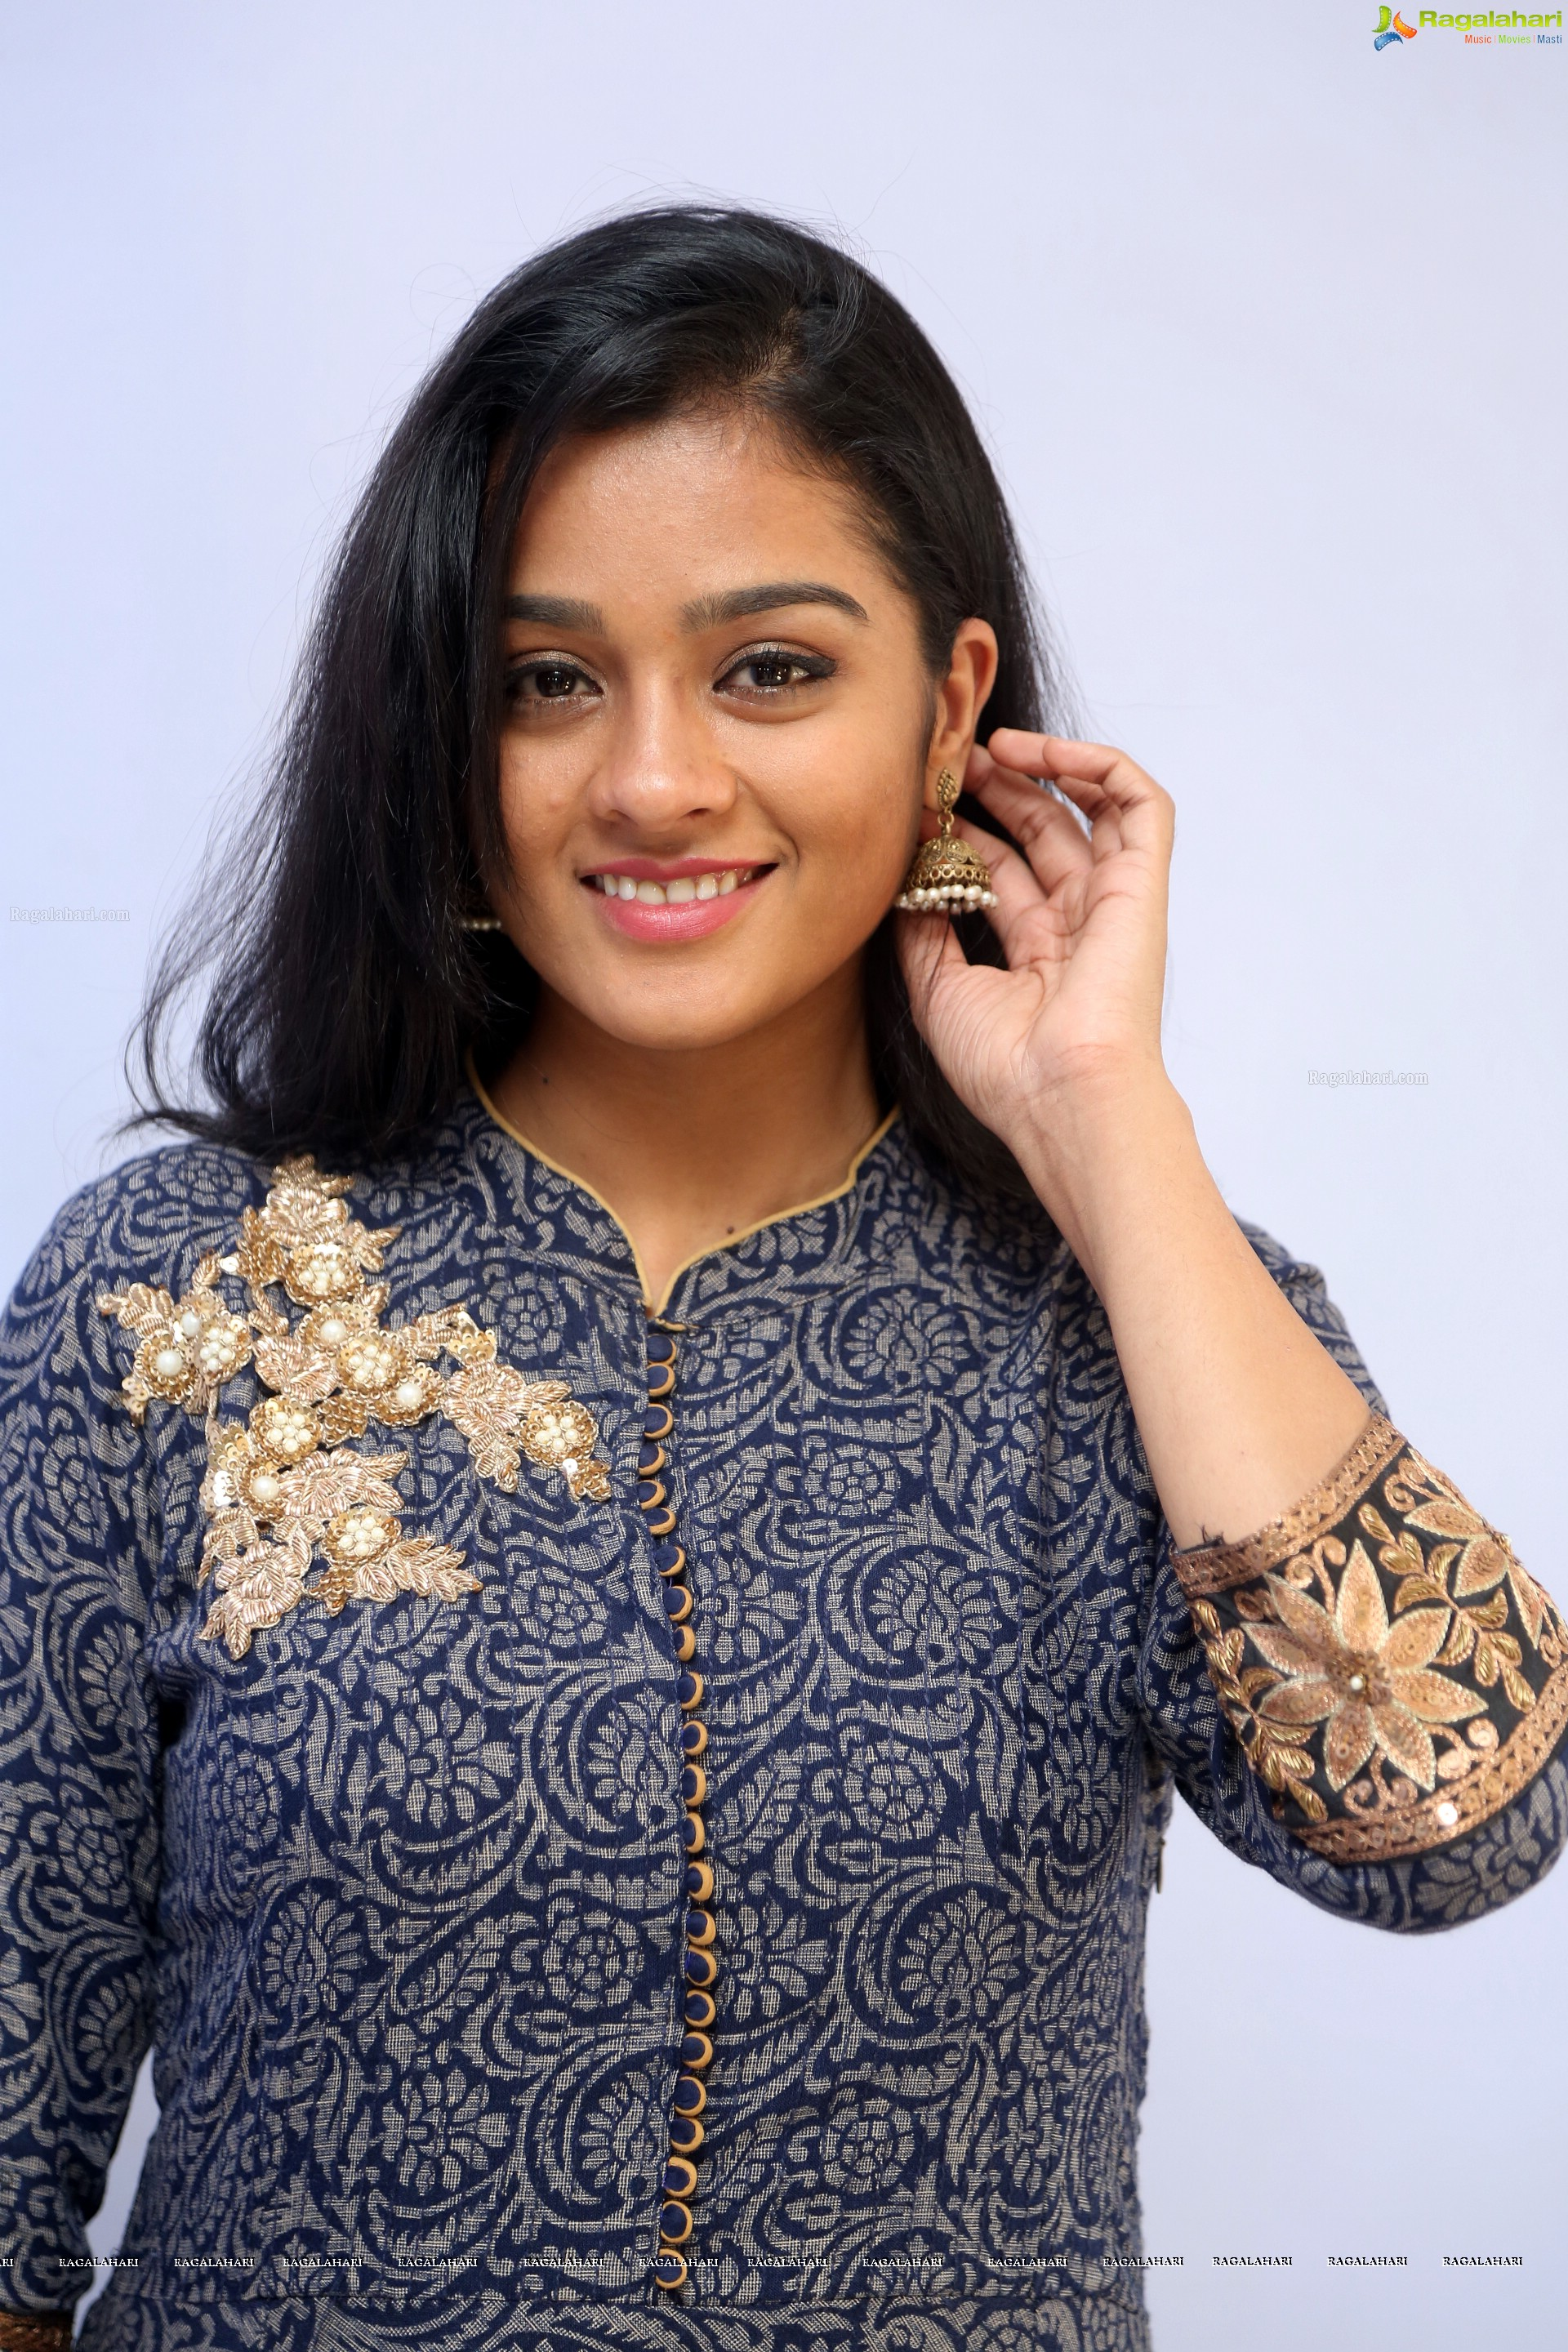 gayathri (hd) image 7 | tollywood actress photos,images, photos